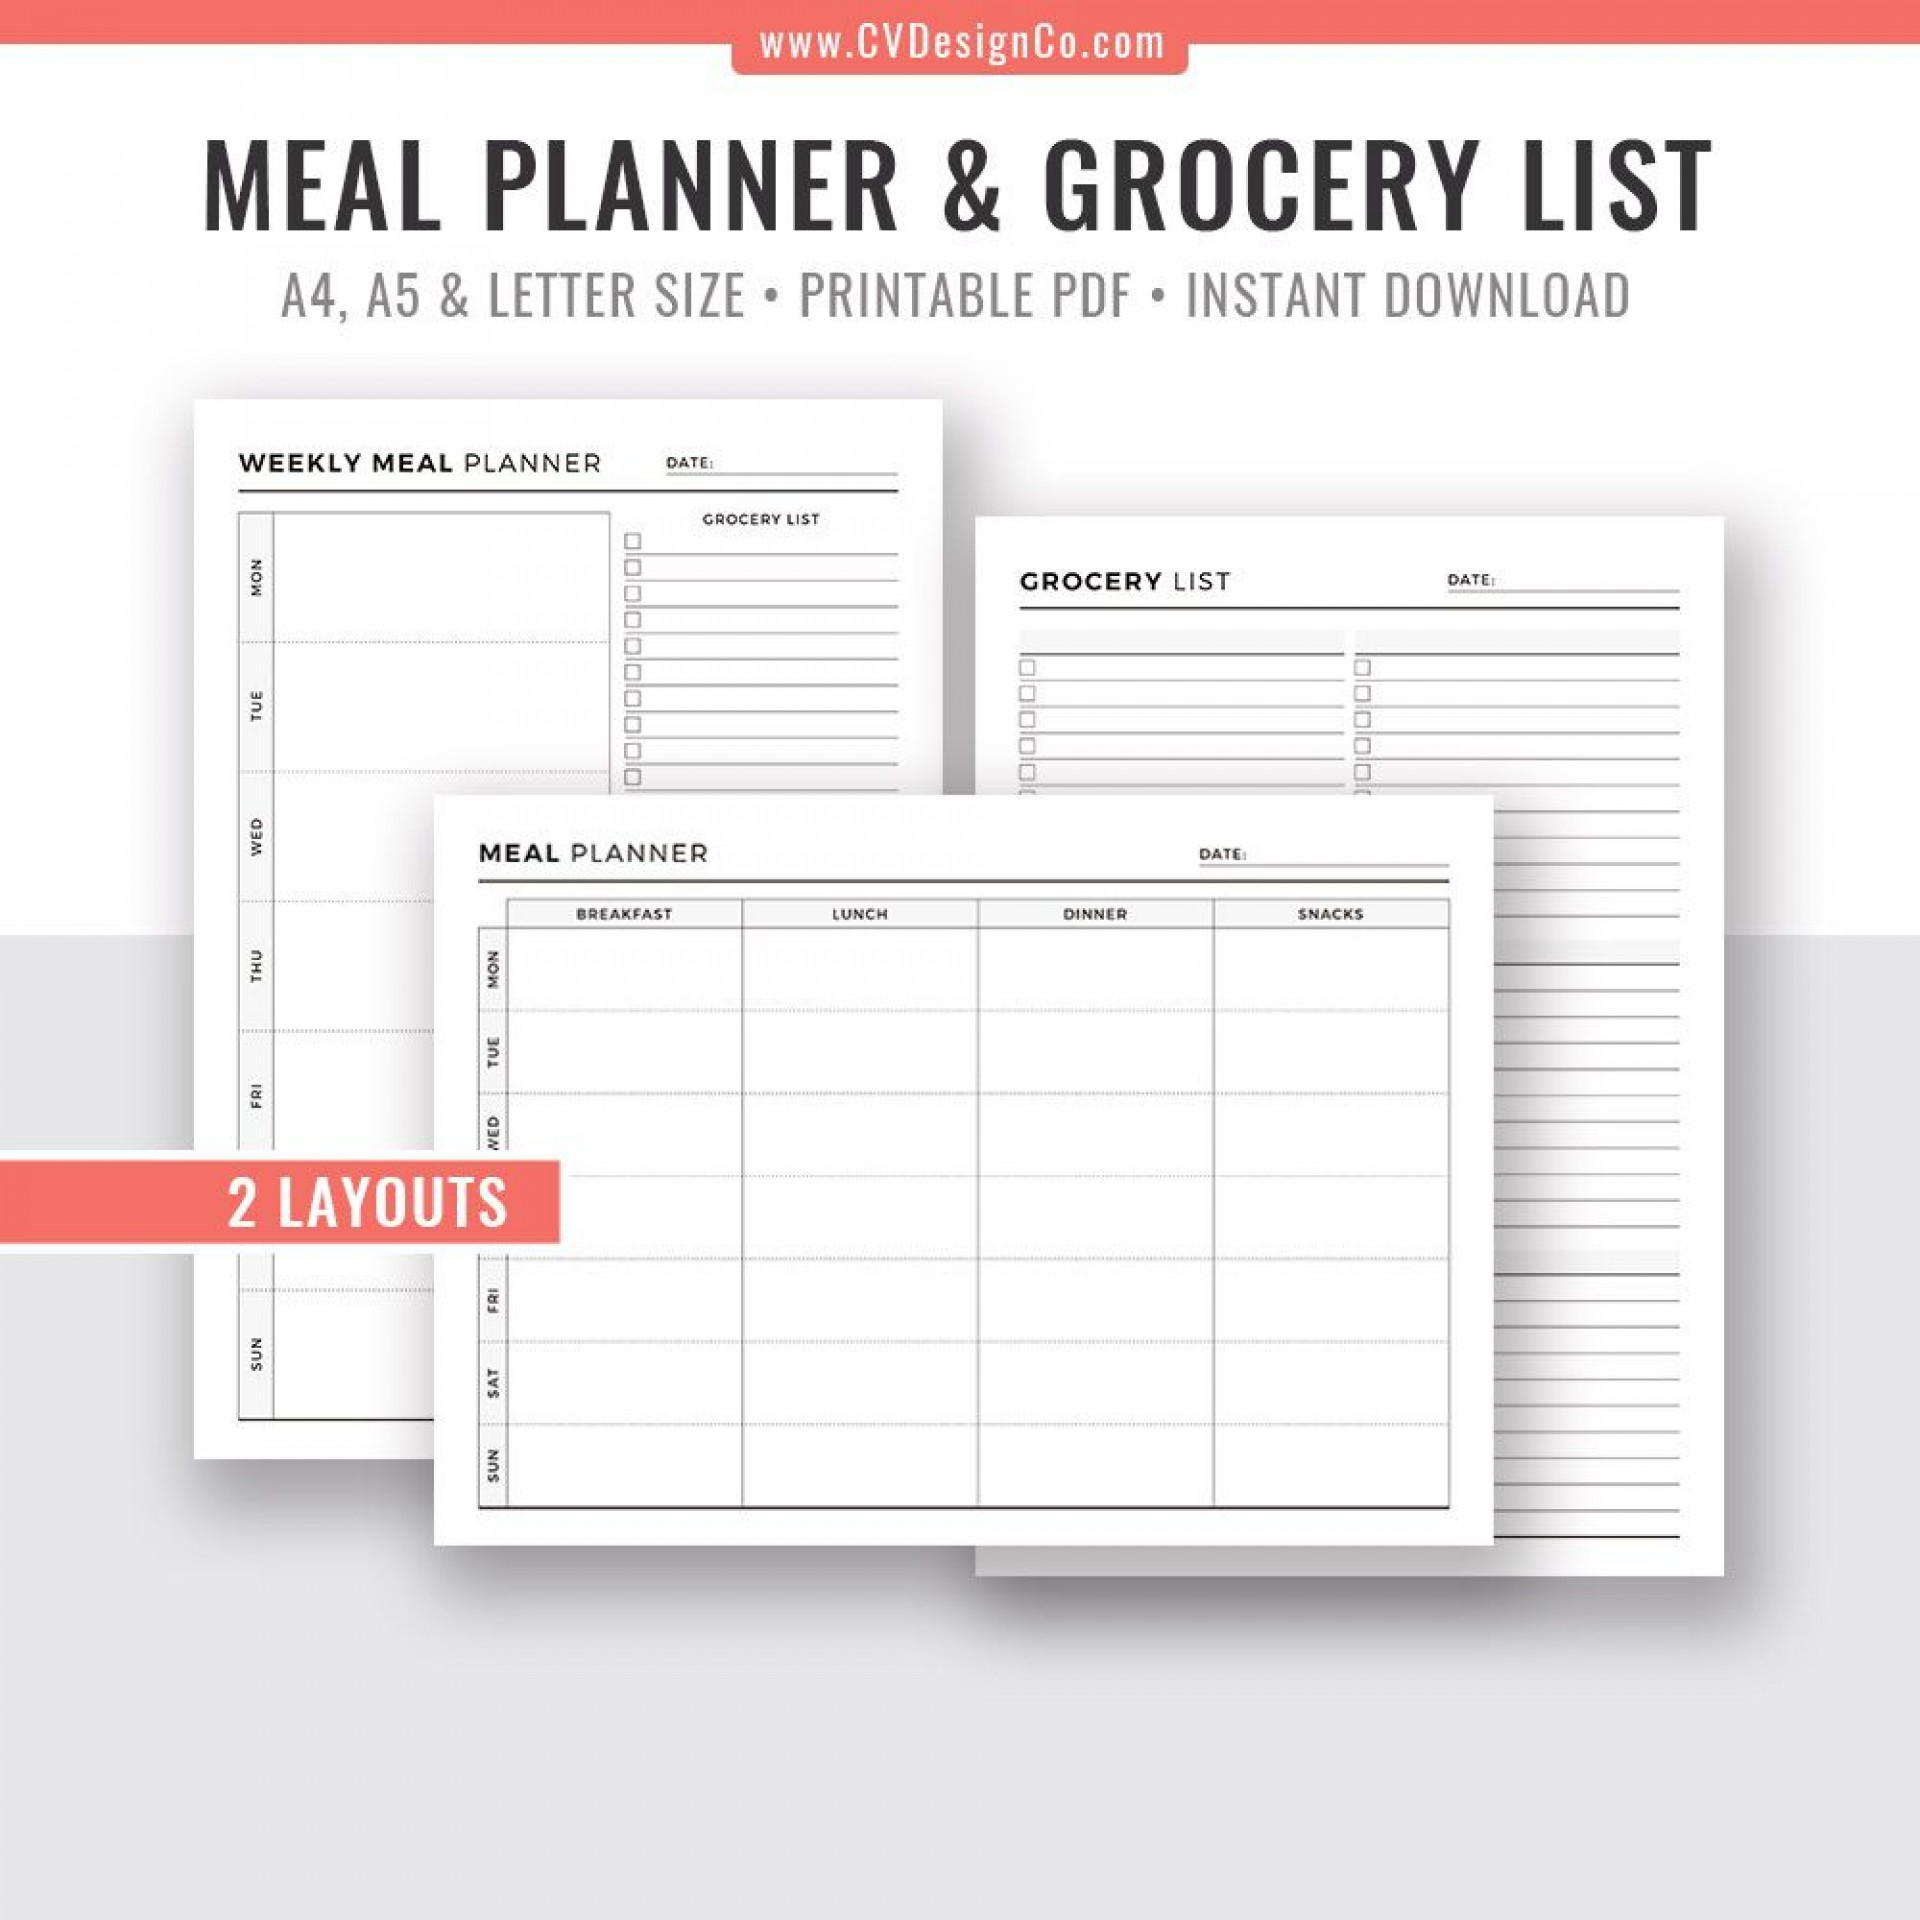 009 Unforgettable Meal Plan With Printable Grocery List Idea  Planning Template Excel Free1920